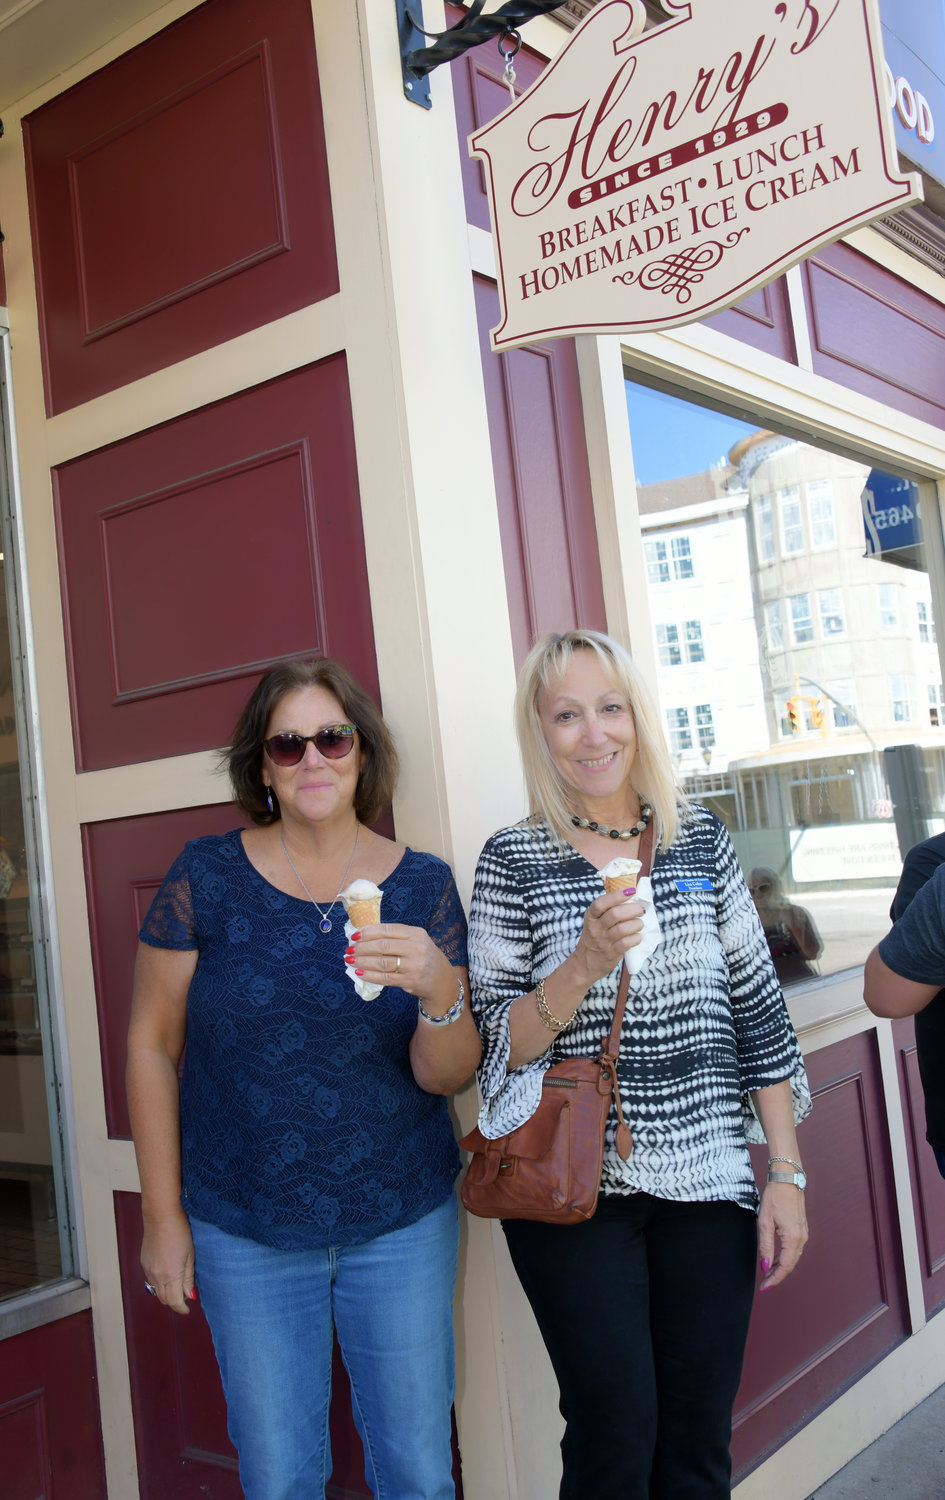 While Henry's is not a part of the Glen Cove Chamber of Commerce, Chamber members Maureen Hauser, left, and Lisa Cohn came out to support the business.